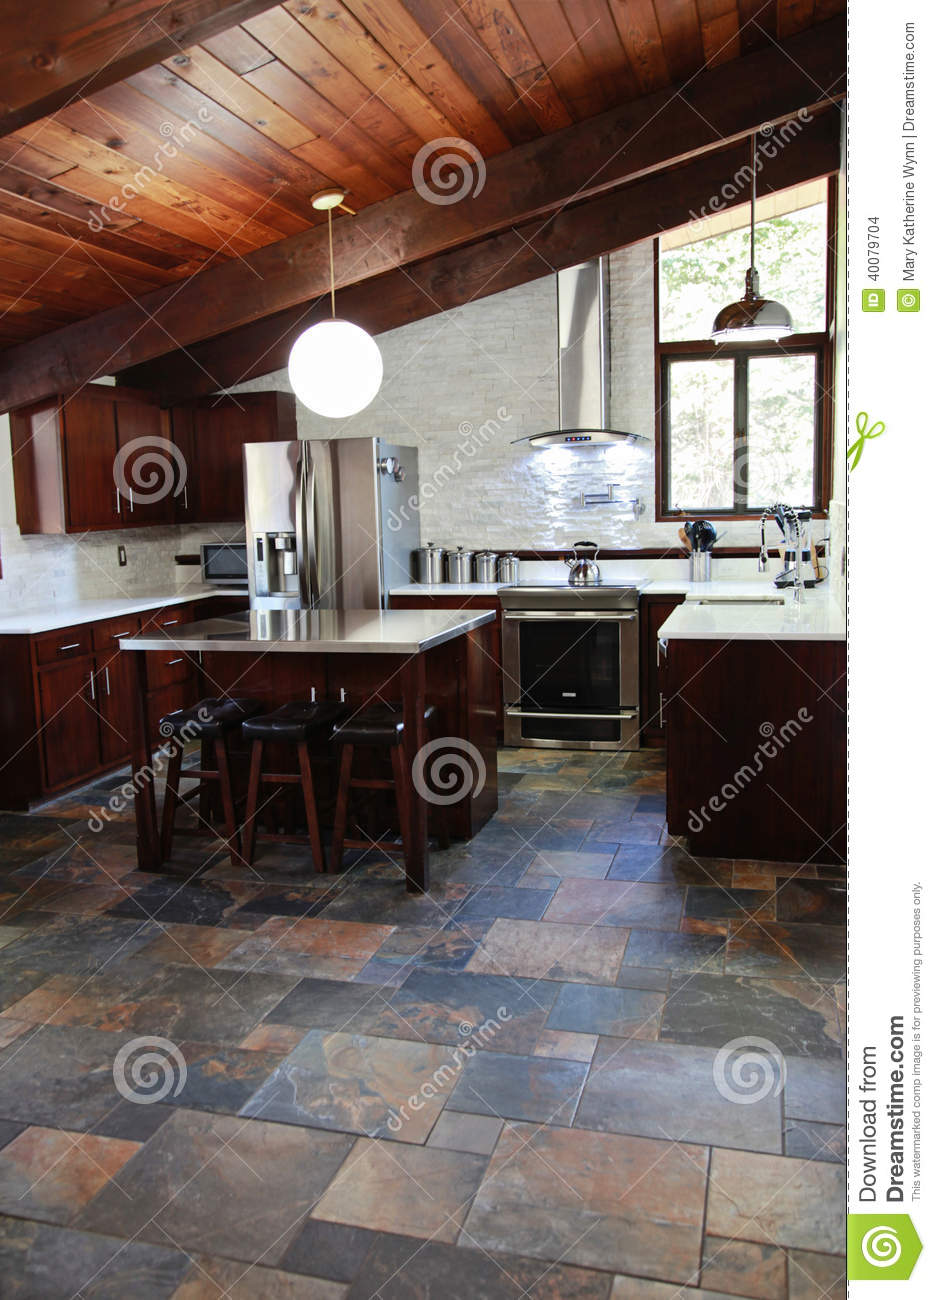 Modern Kitchen Stock Photo Image 40079704